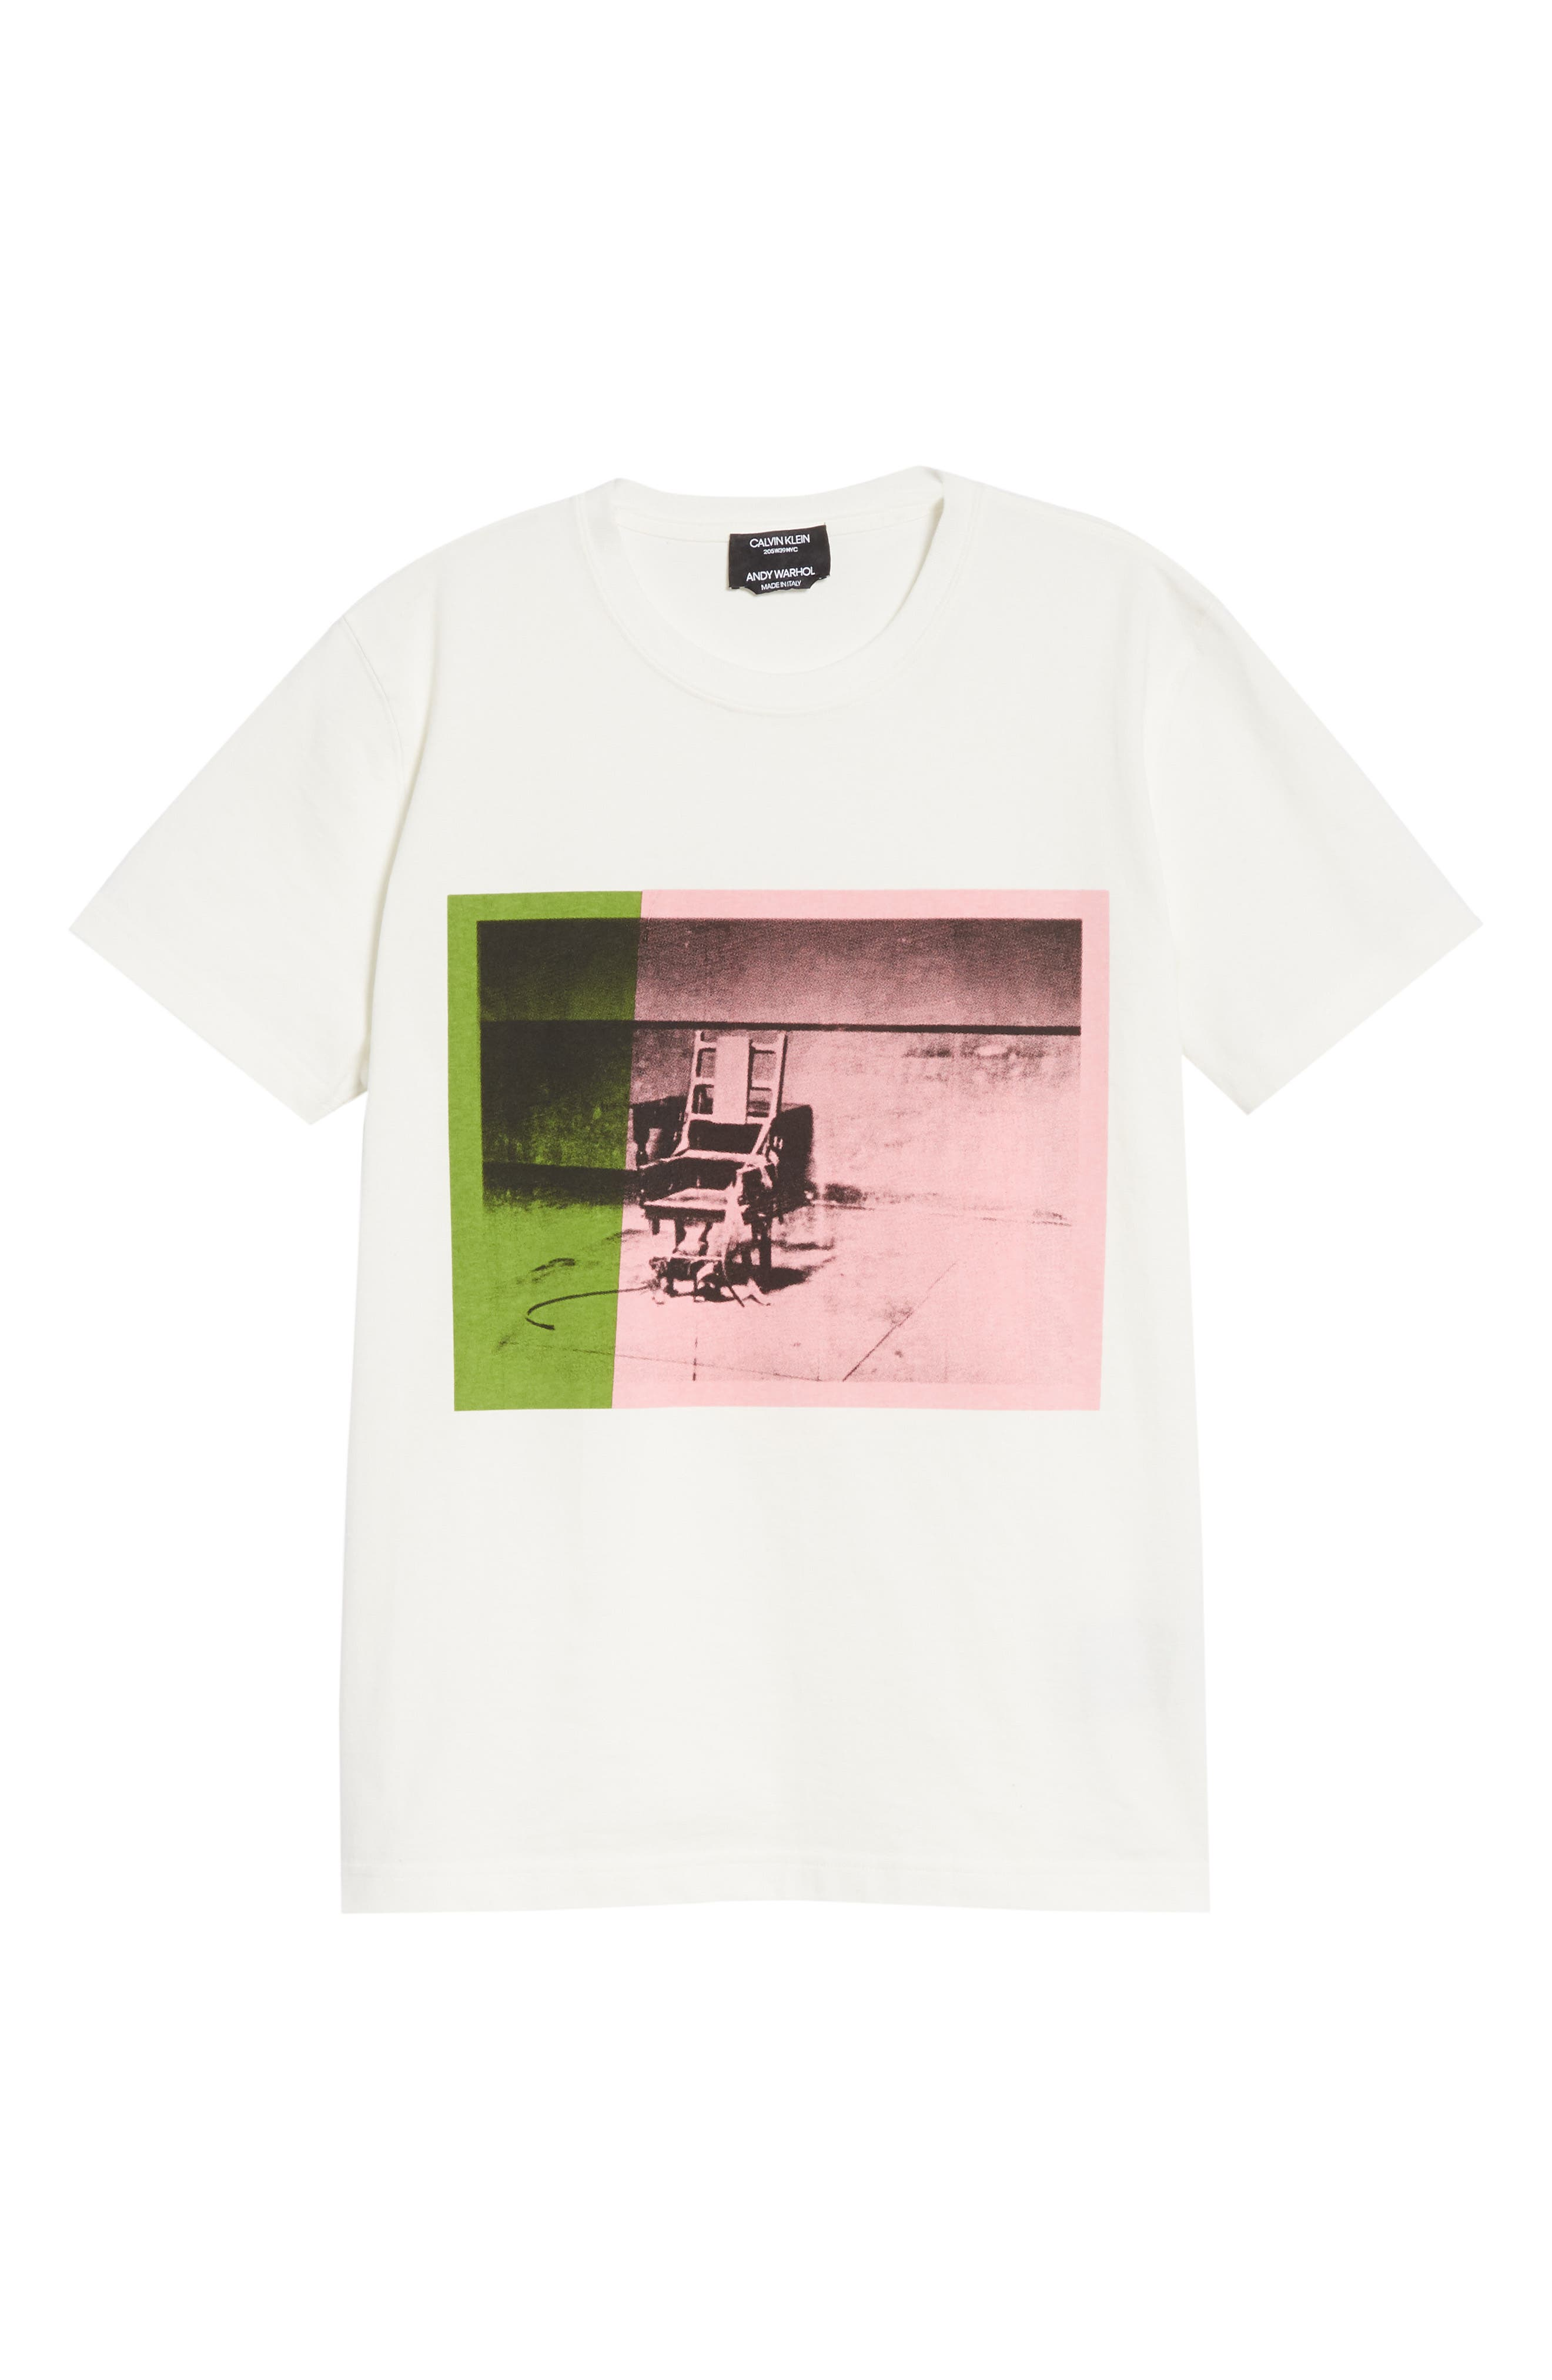 x Andy Warhol Foundation Electric Chair Graphic Tee,                             Alternate thumbnail 6, color,                             White/ Pink/ Green